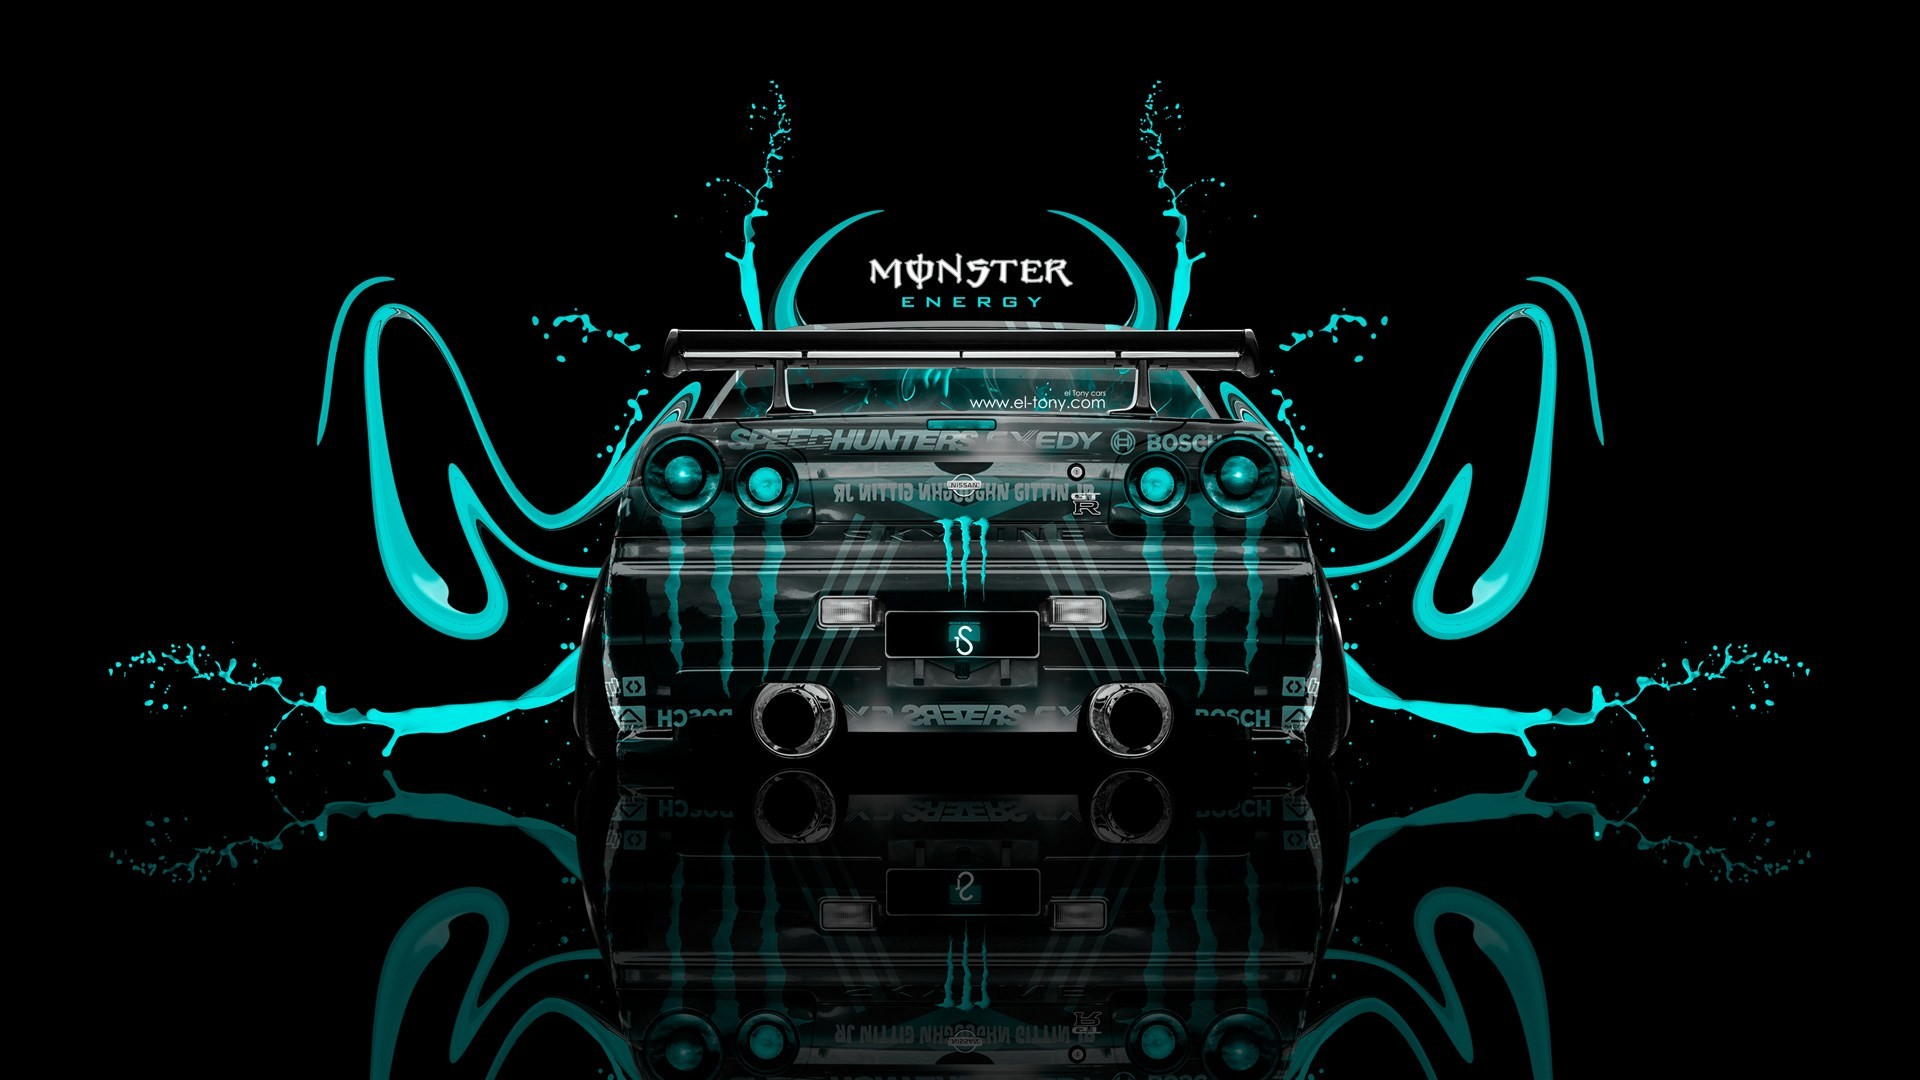 Monster energy wallpaper and background image | 1440x900 | id.